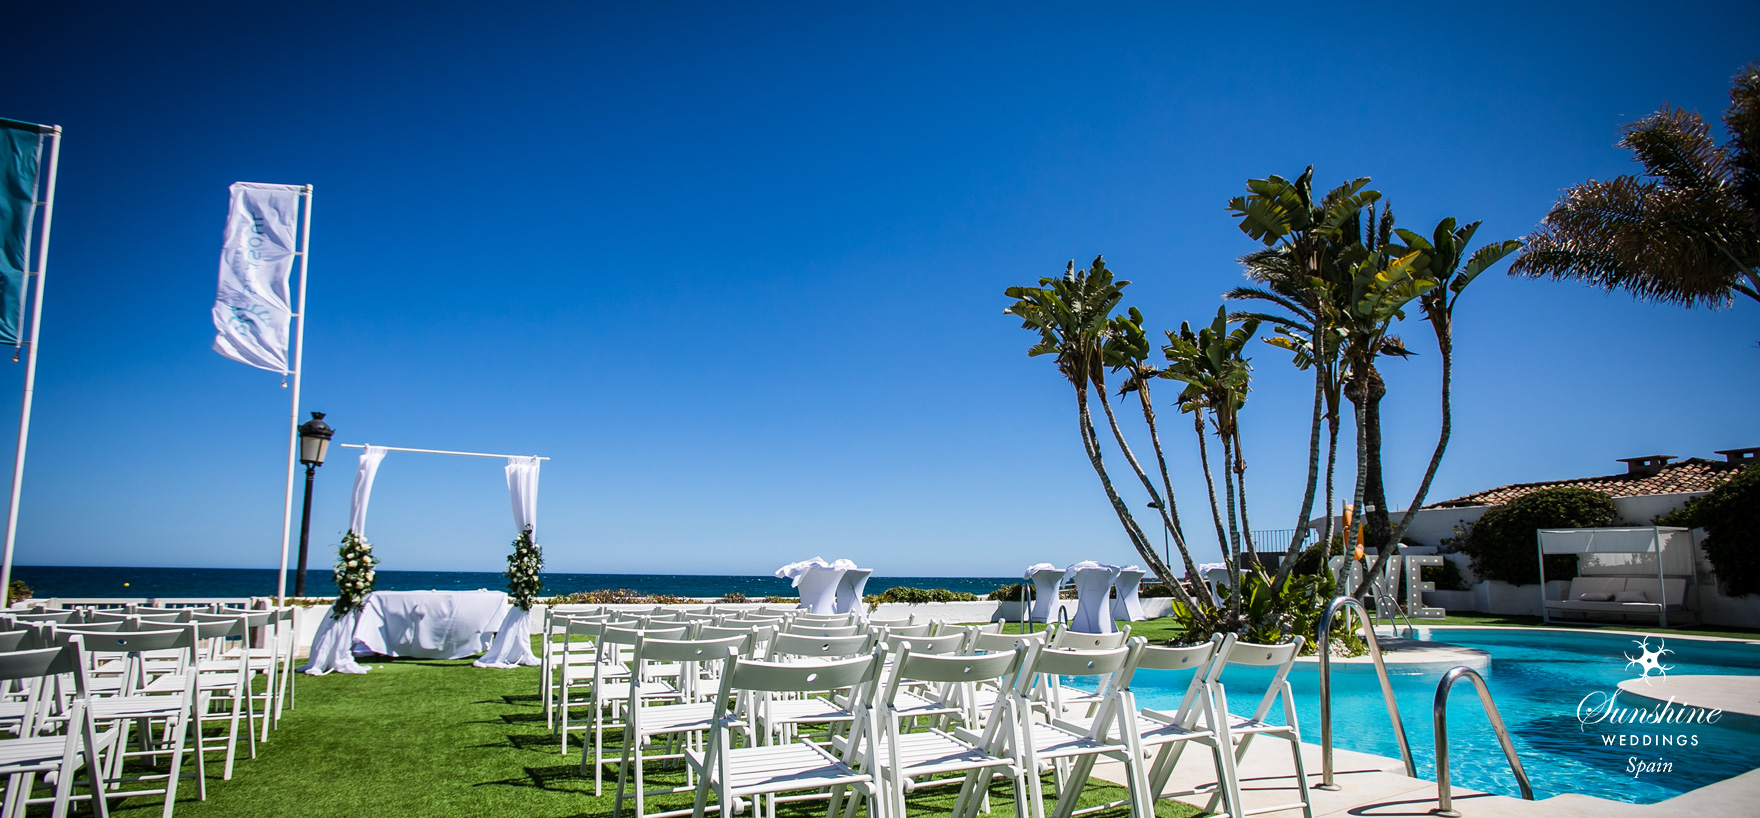 Wedding Hotel In Marbella